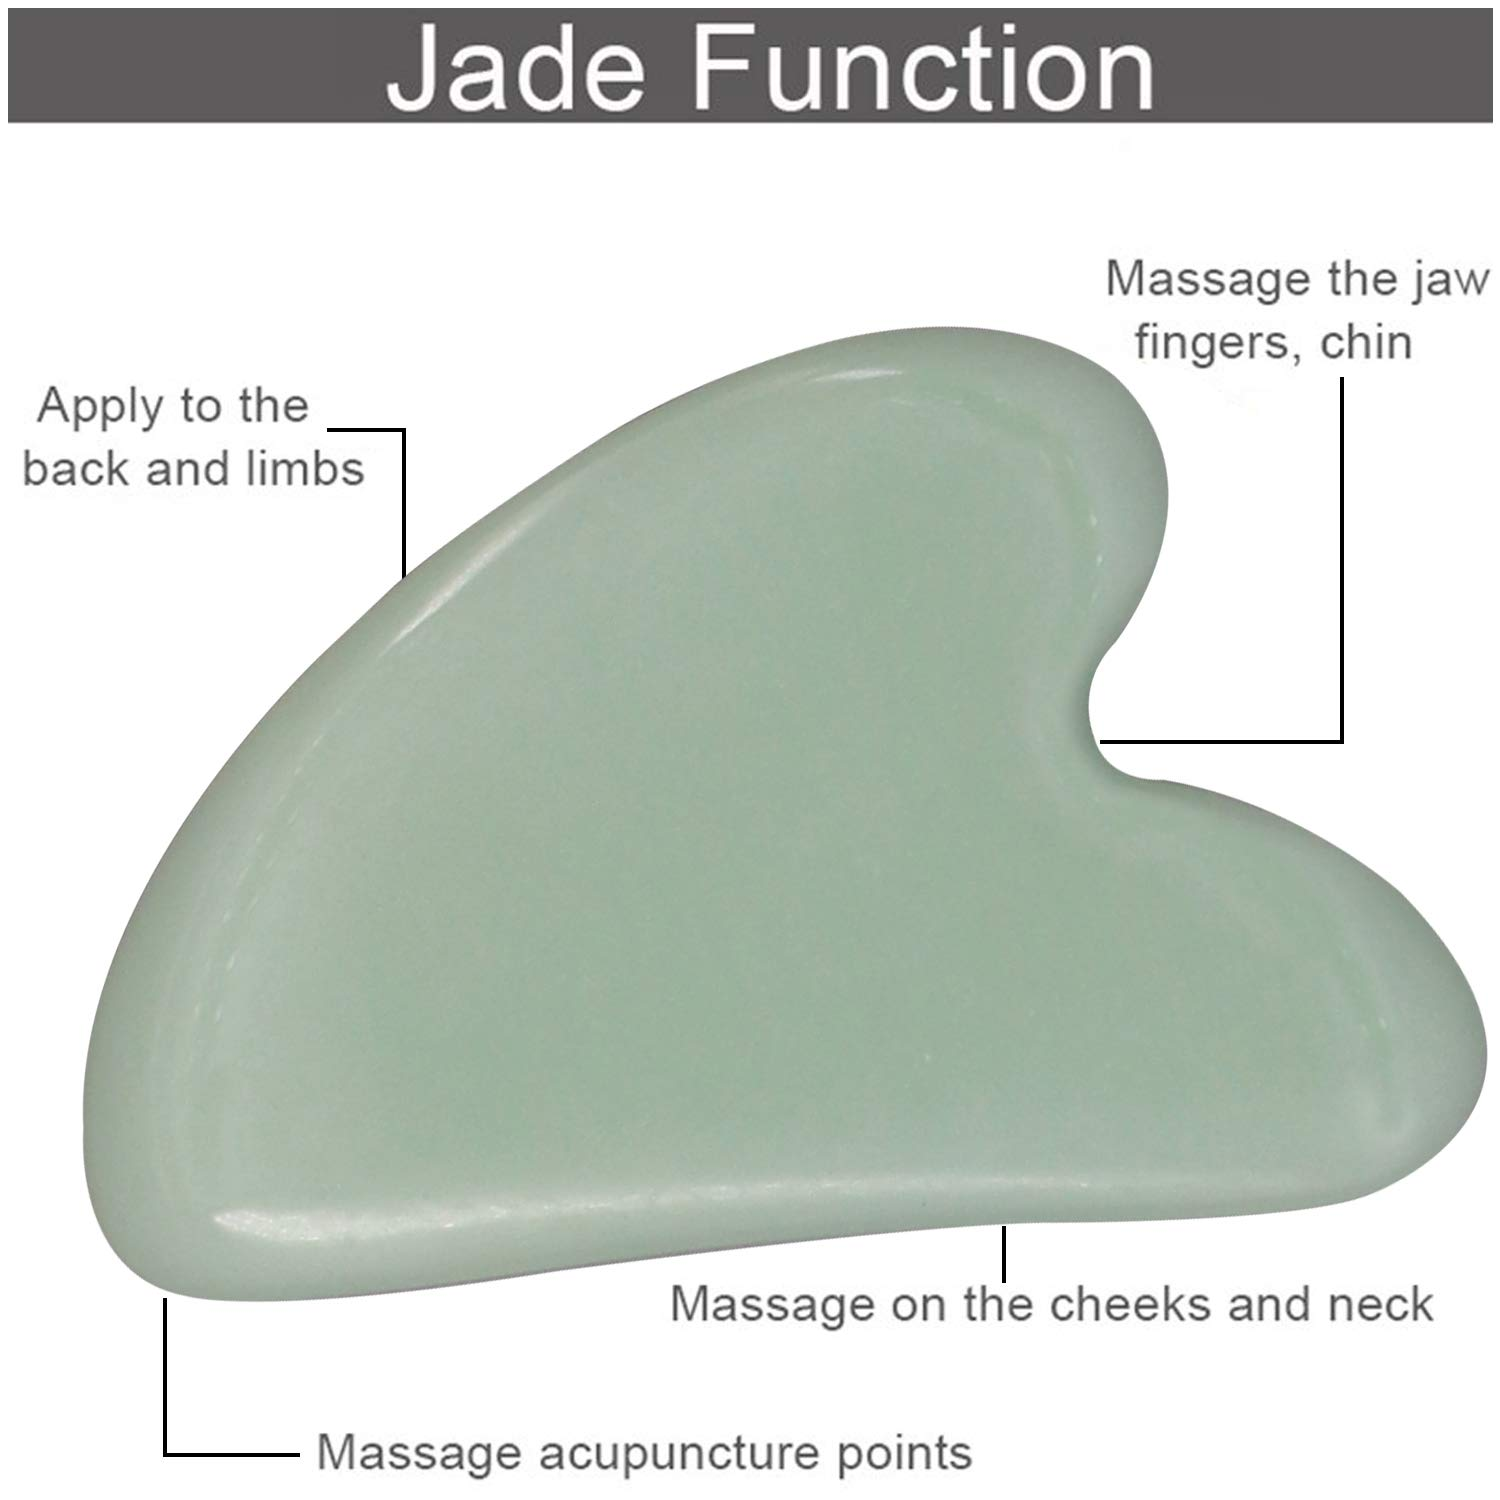 Zureni GSB-HZ-7-5 Gua Sha Scraping Massage Tool for Facial Glow, Blood Circulation, Natural Jade Stone Removes Toxins, Prevents Wrinkles, Boost Radiance of Complexion (1 Pc, Light Green)